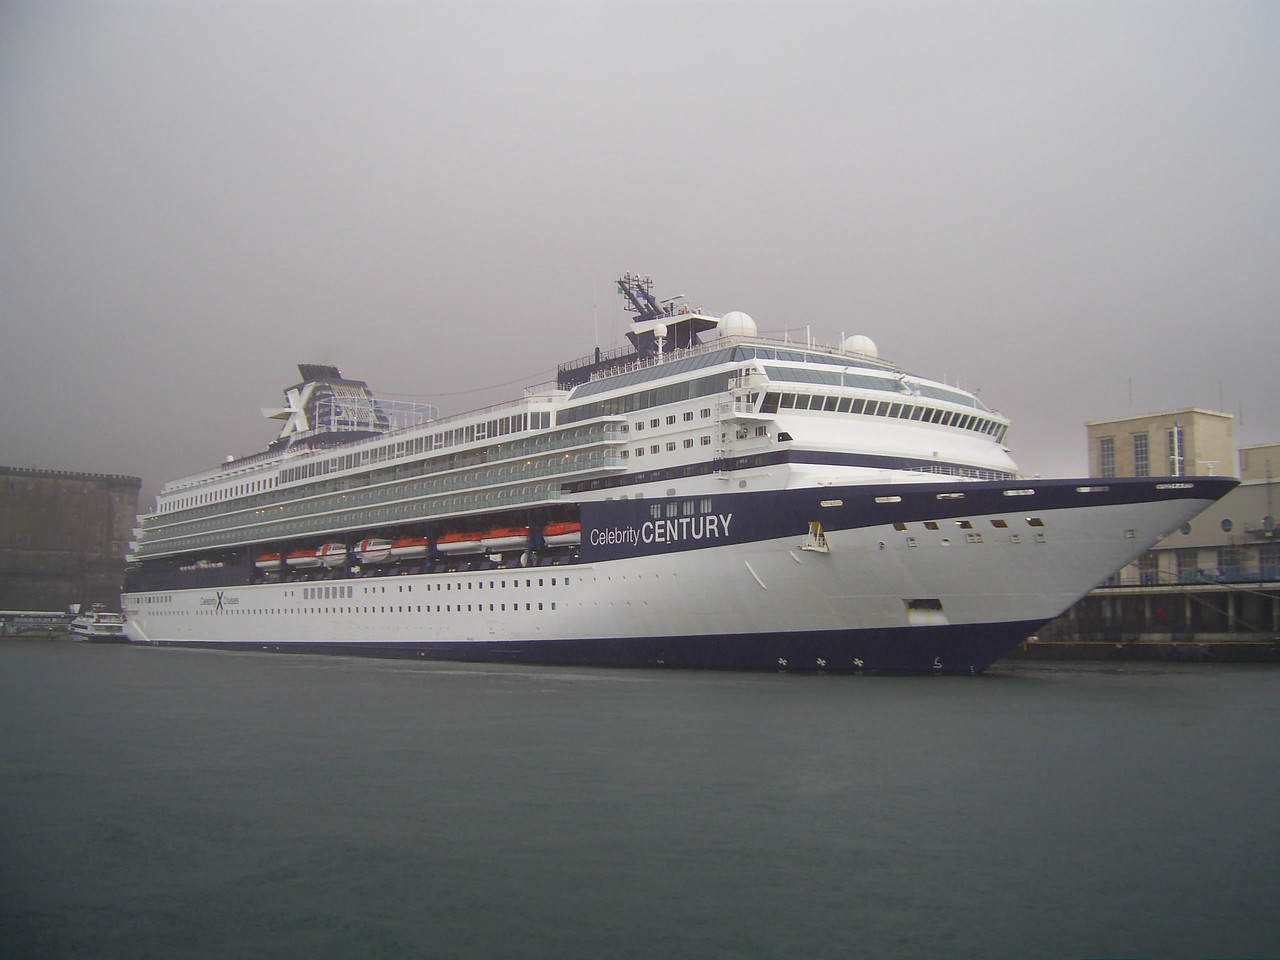 M/S CELEBRITY CENTURY moored in Napoli in a rainy day.